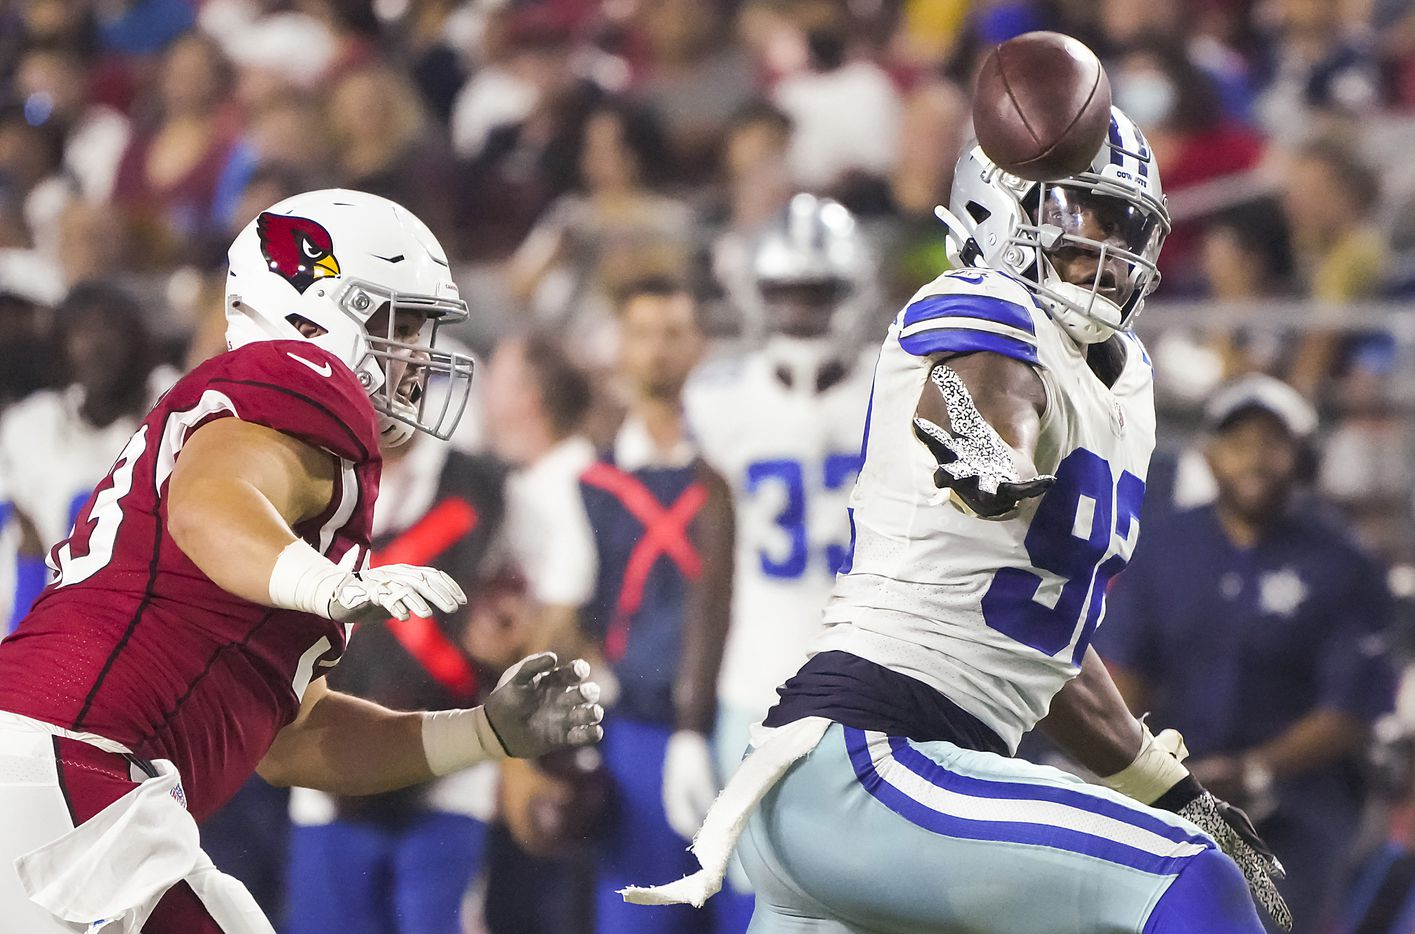 Dallas Cowboys defensive end Dorance Armstrong (92) tries to intercept a tipped ball against Arizona Cardinals offensive lineman Marcus Henry (53) during the second quarter of an NFL football game at State Farm Stadium on Friday, Aug. 13, 2021, in Glendale, Ariz.